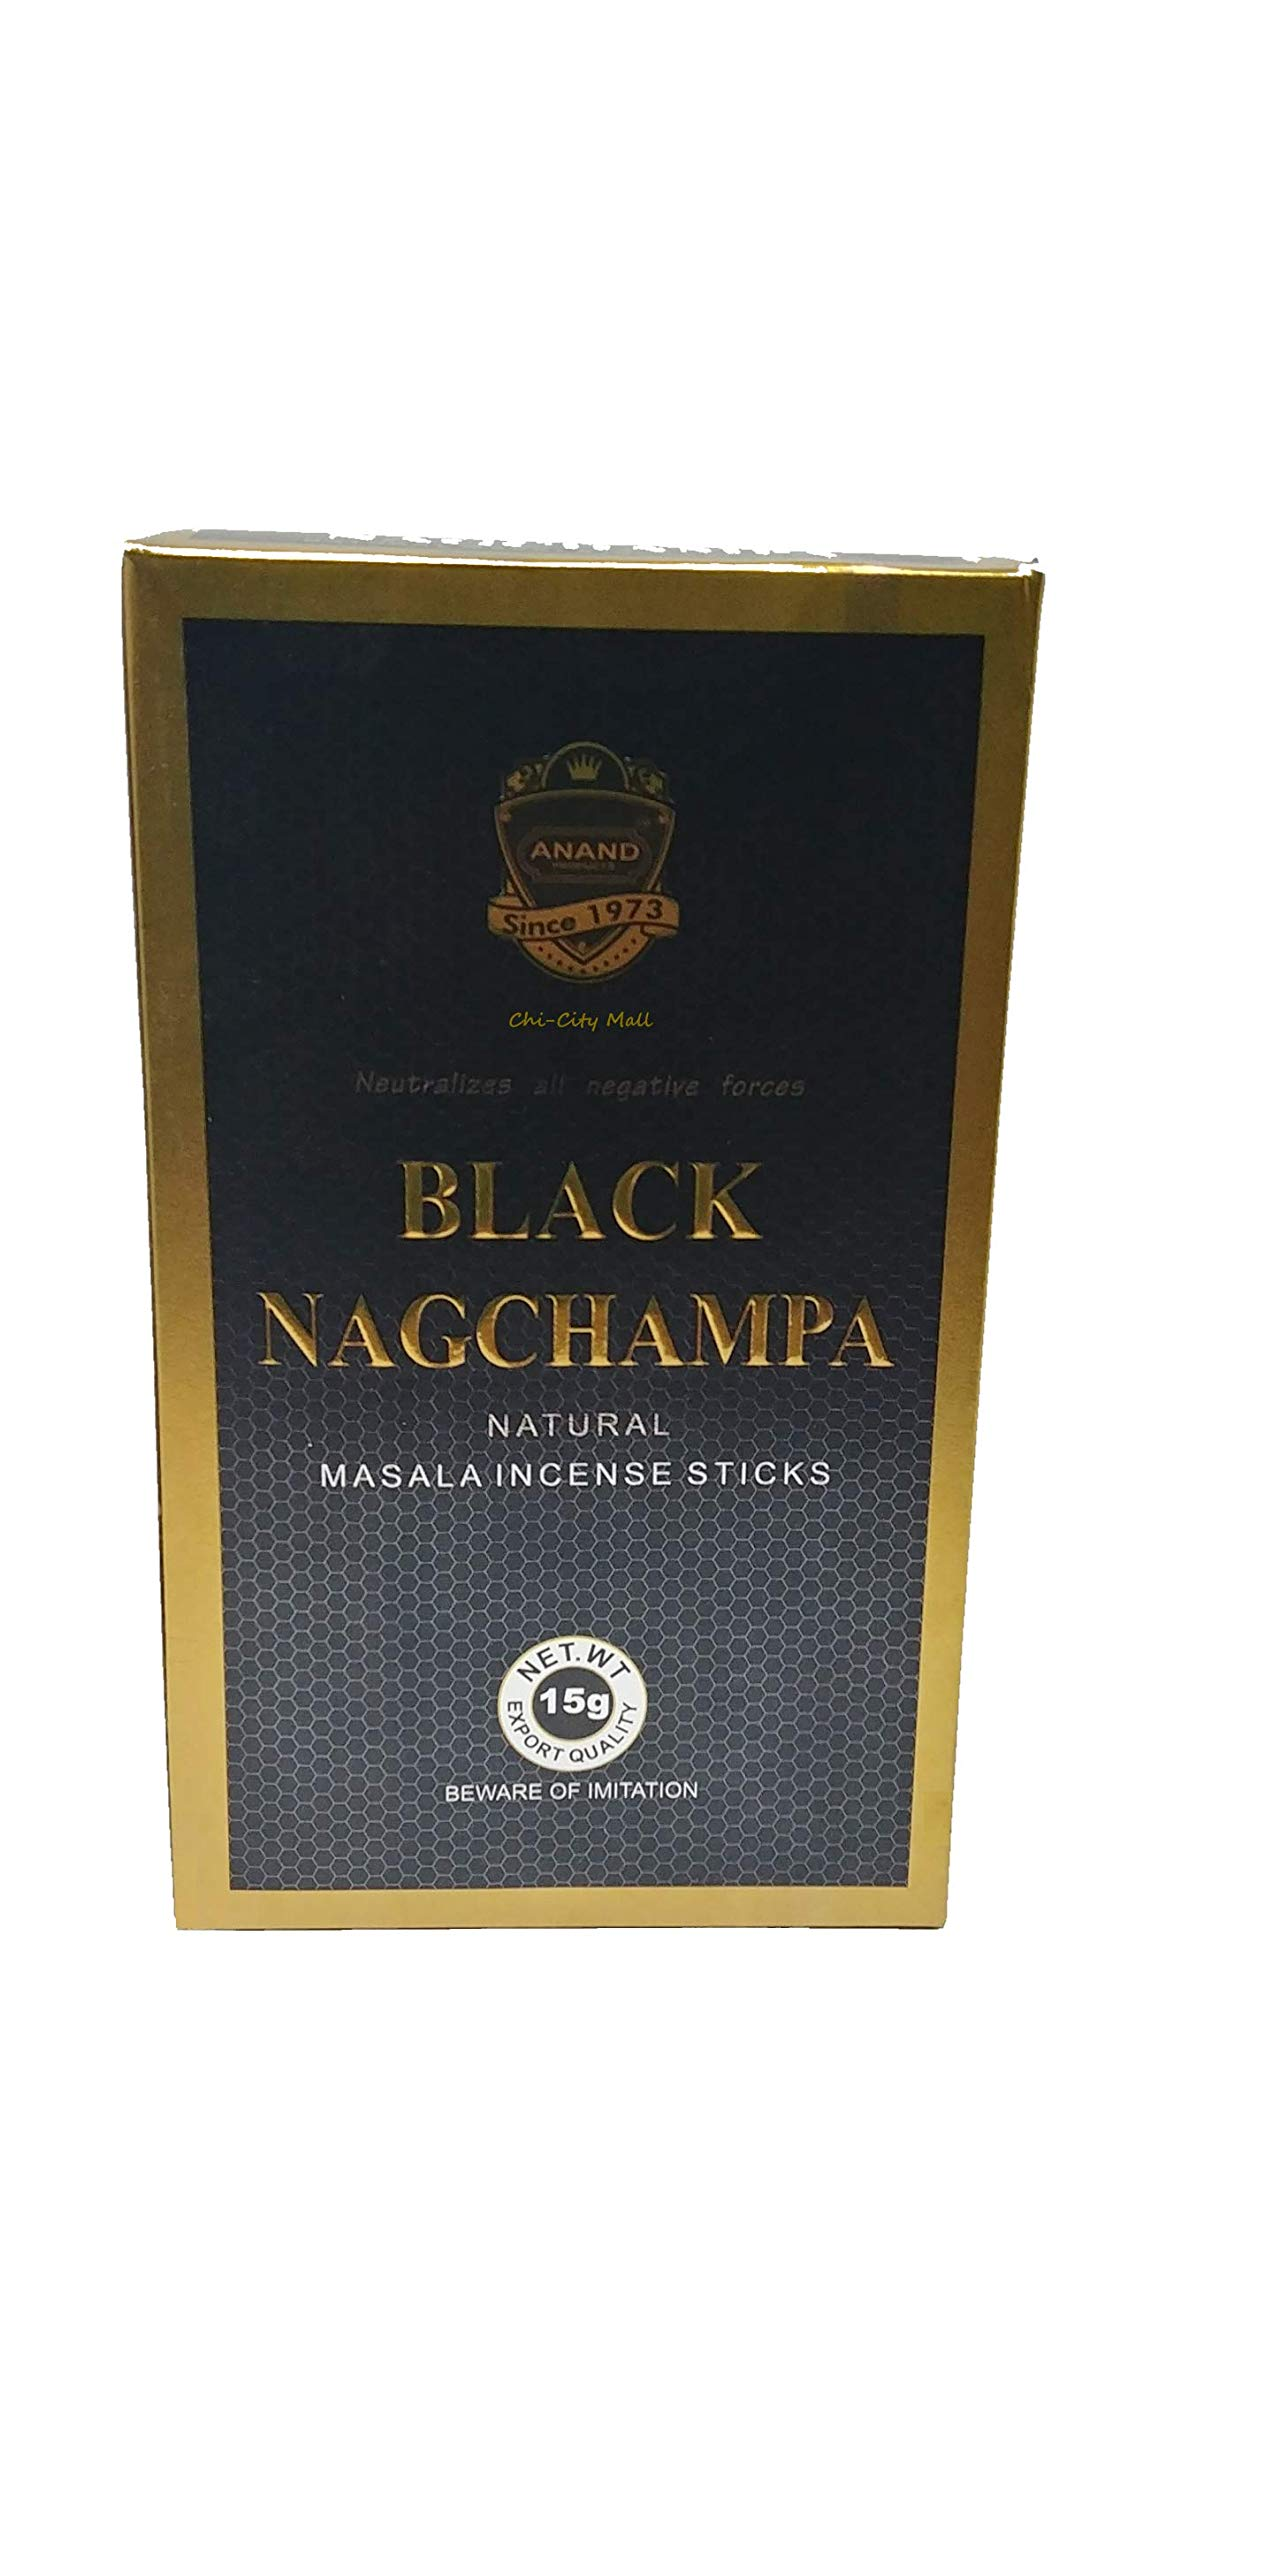 Anand Agarbathi Black Nag Champa Natural Masala Incense Sticks Wholesale Pack |12 Boxes x 15 Grams = 180g | Nagchampa Negro | Exclusively Made in India | Export Quality | Beware Imitation | by Anand Agarbathi